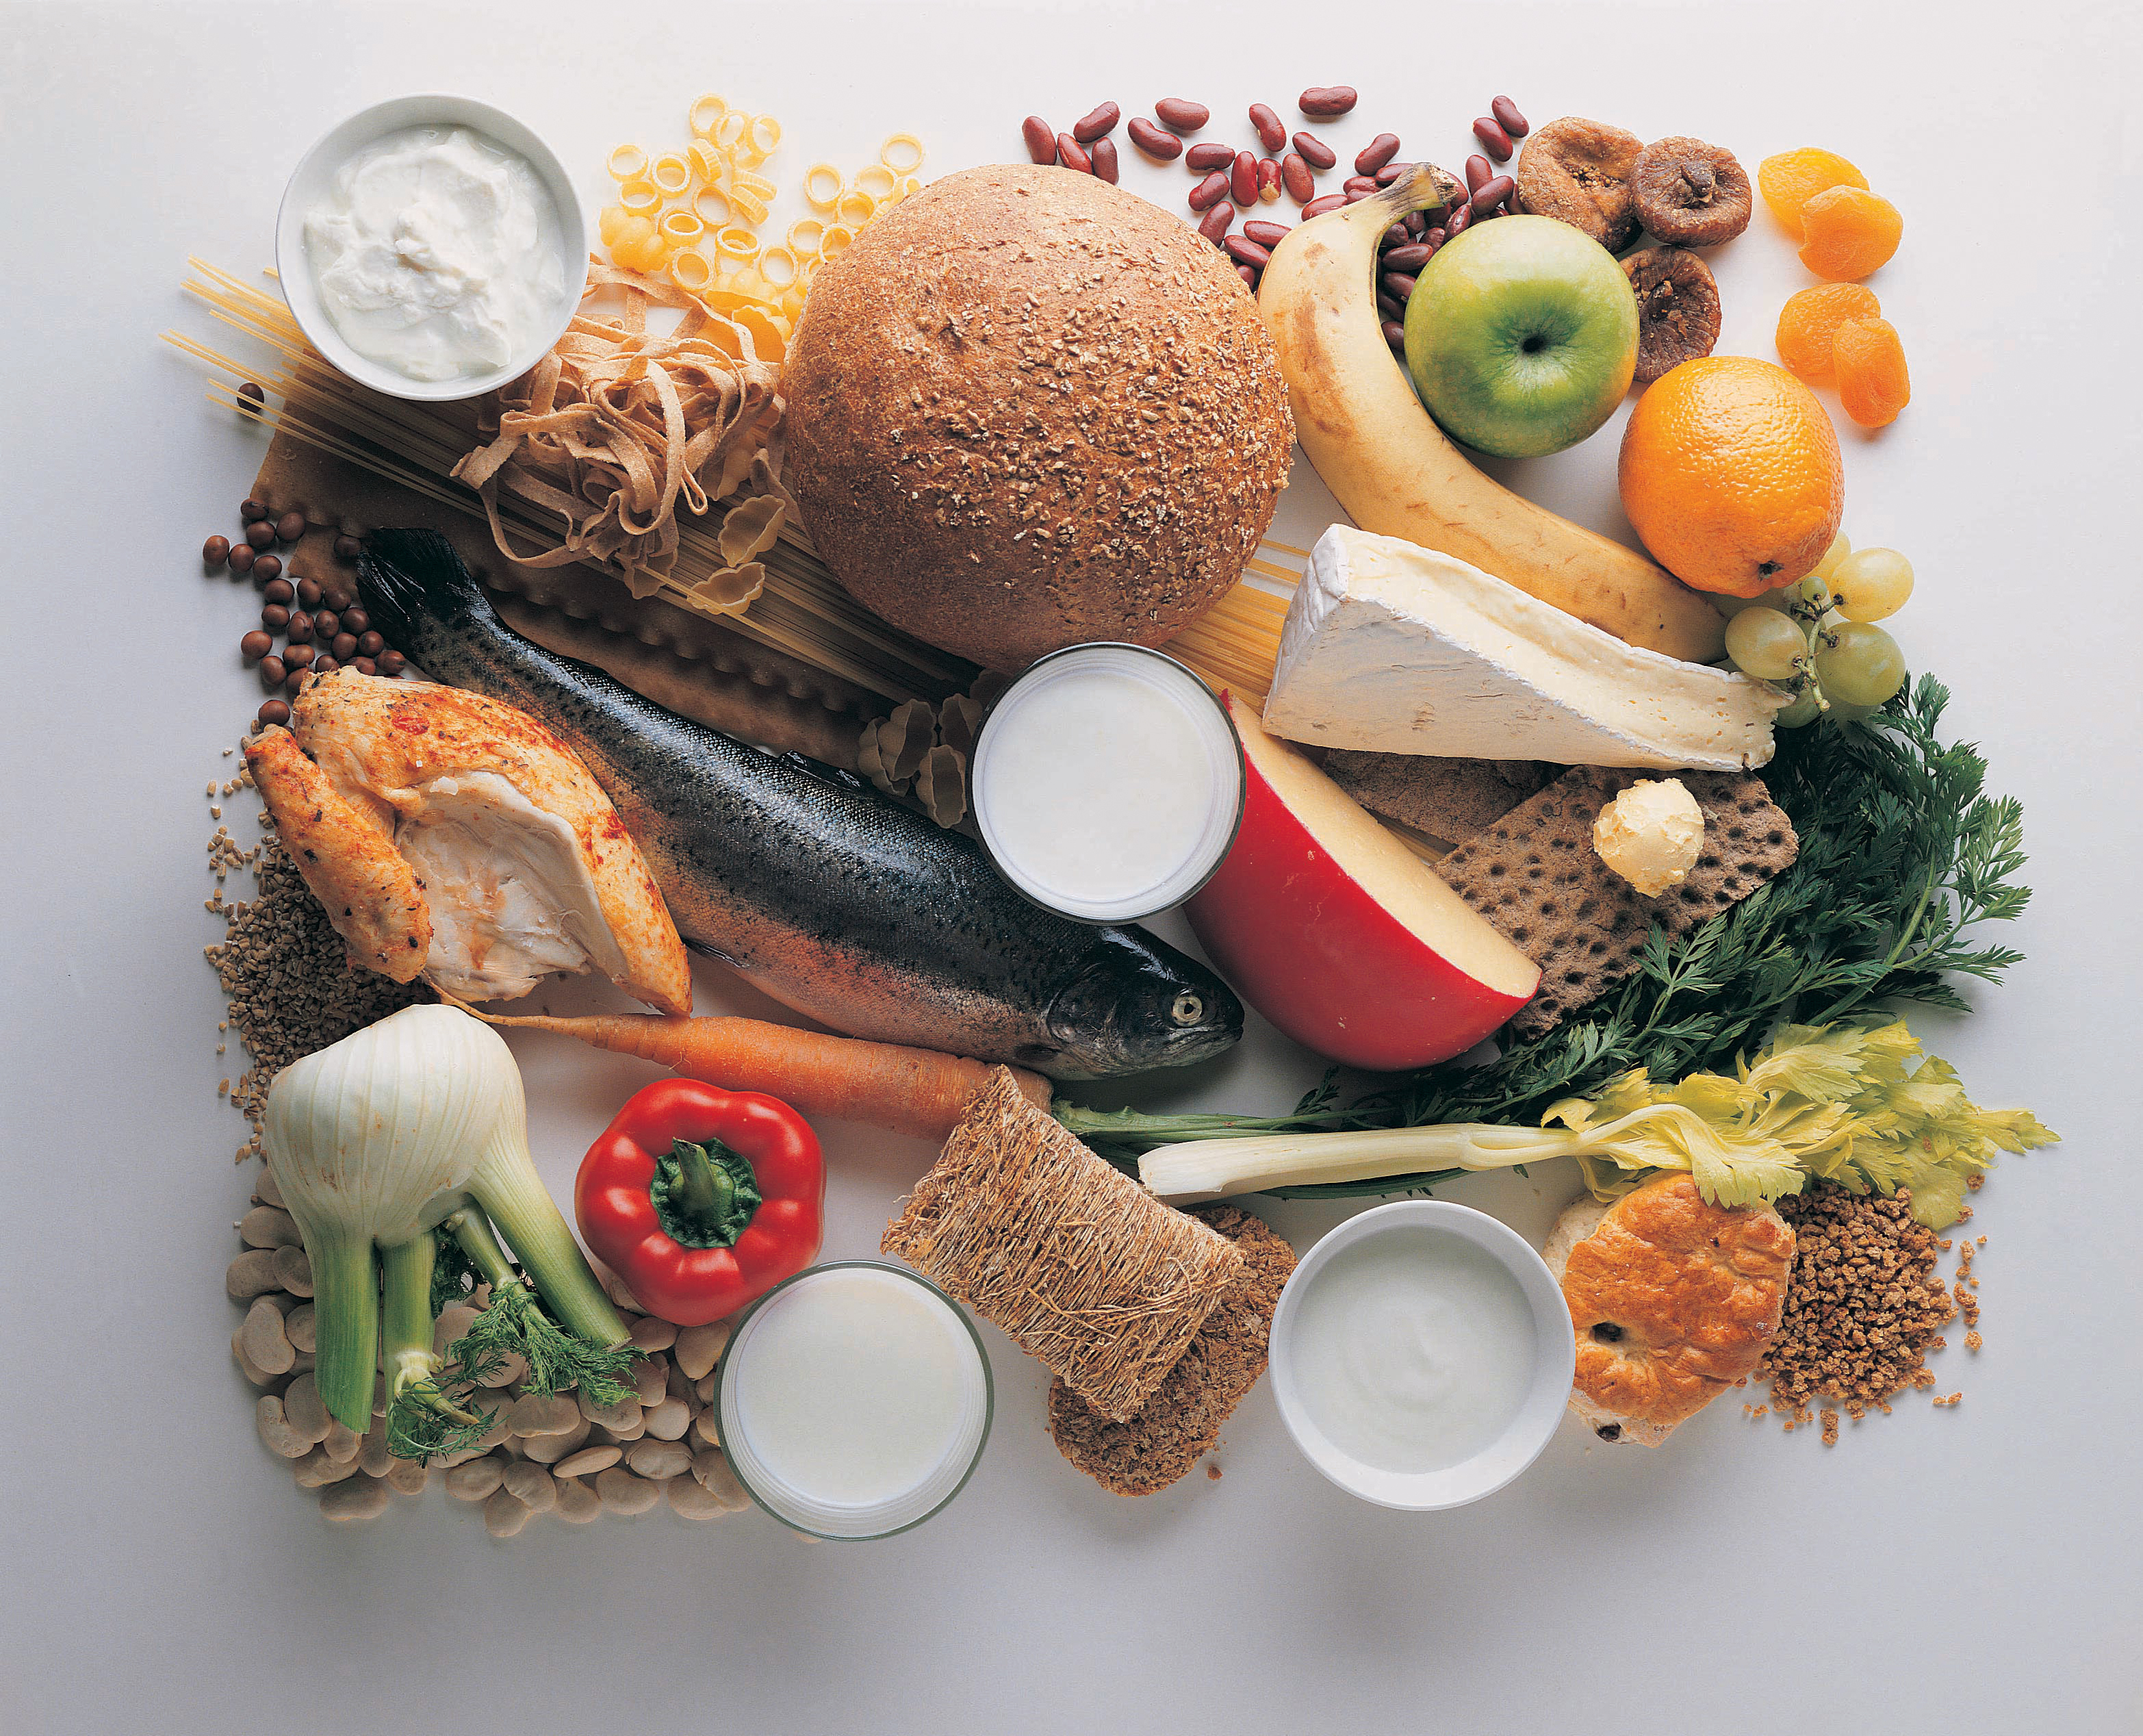 Healthy Eating - Grains, Fish, Chicken, Fruit, Vegetables, Beans and Cheeses